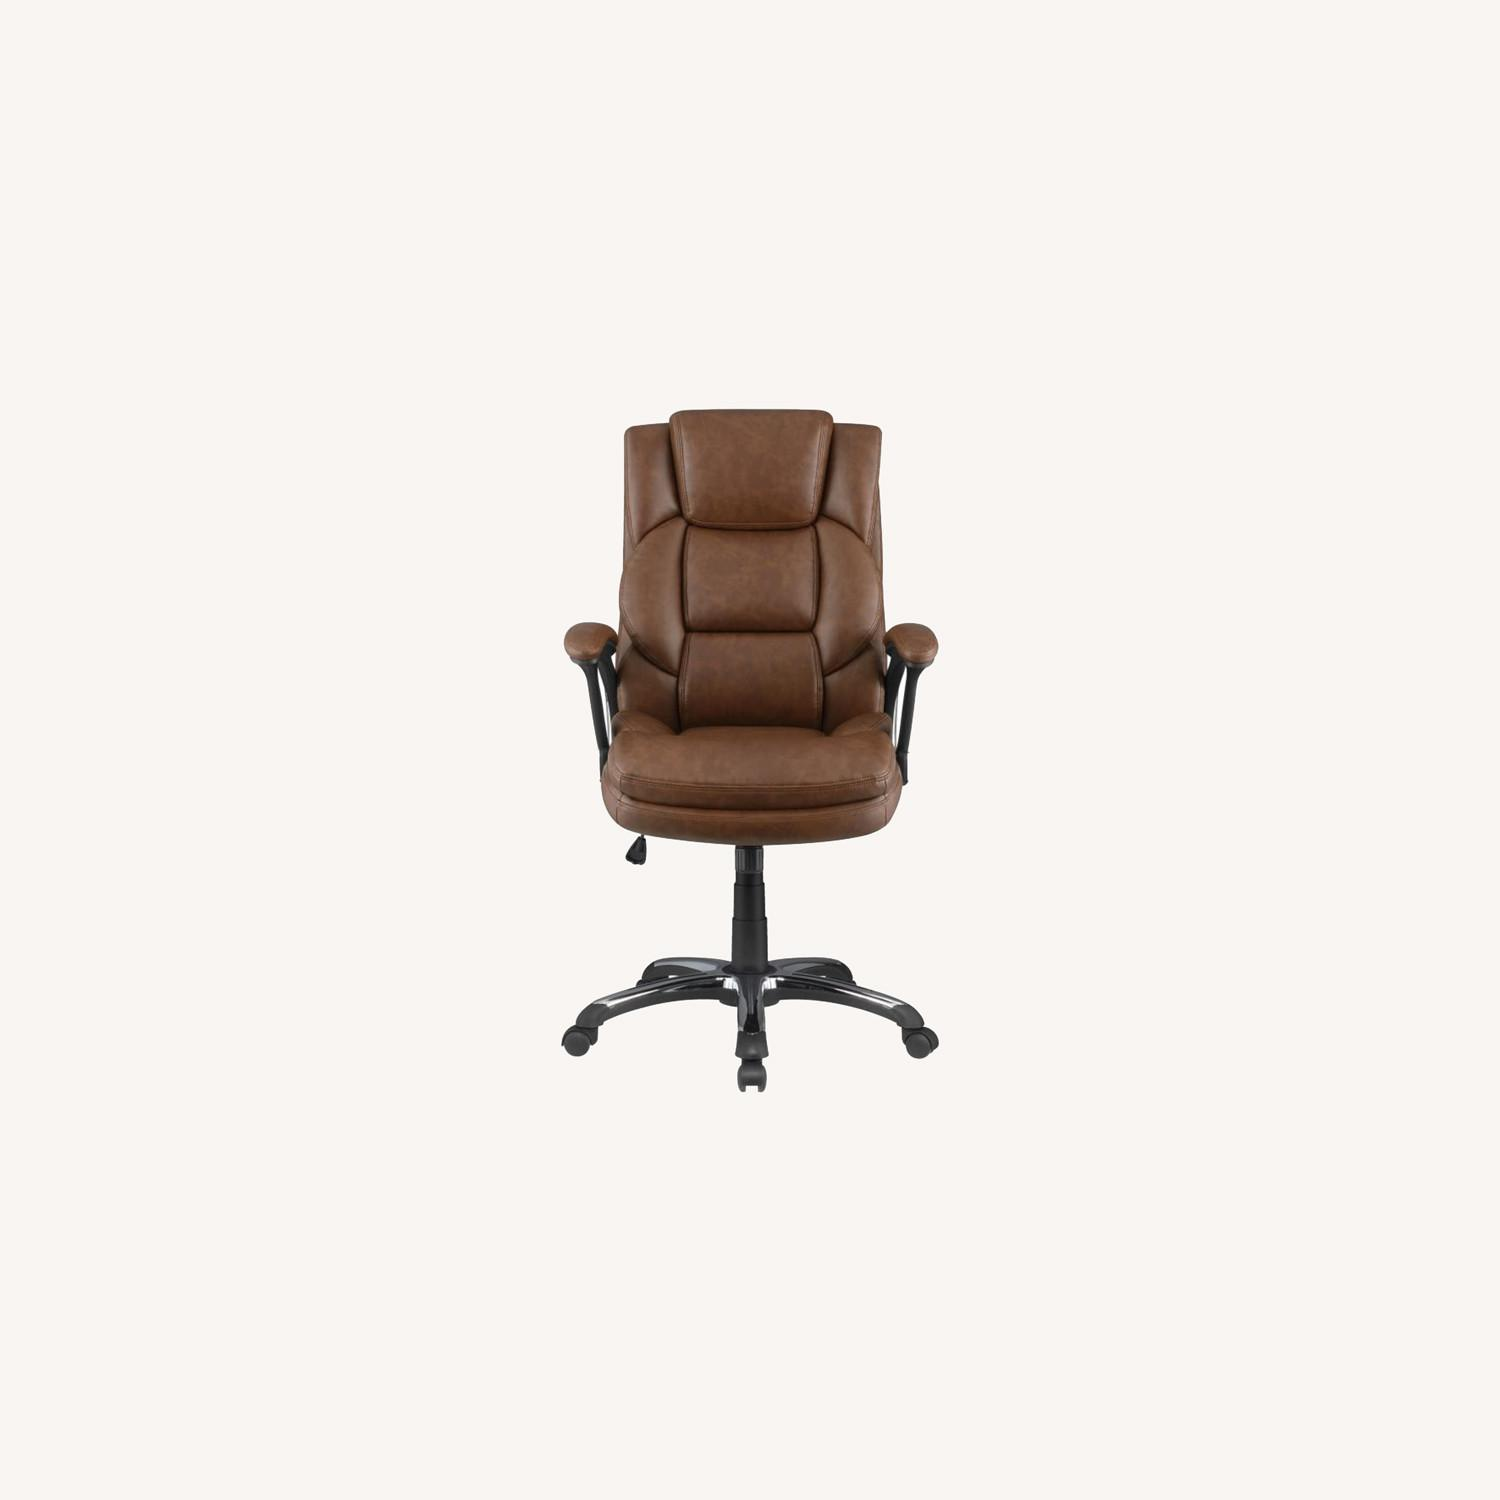 Office Chair In Tufted Brown Leatherette Finish - image-9